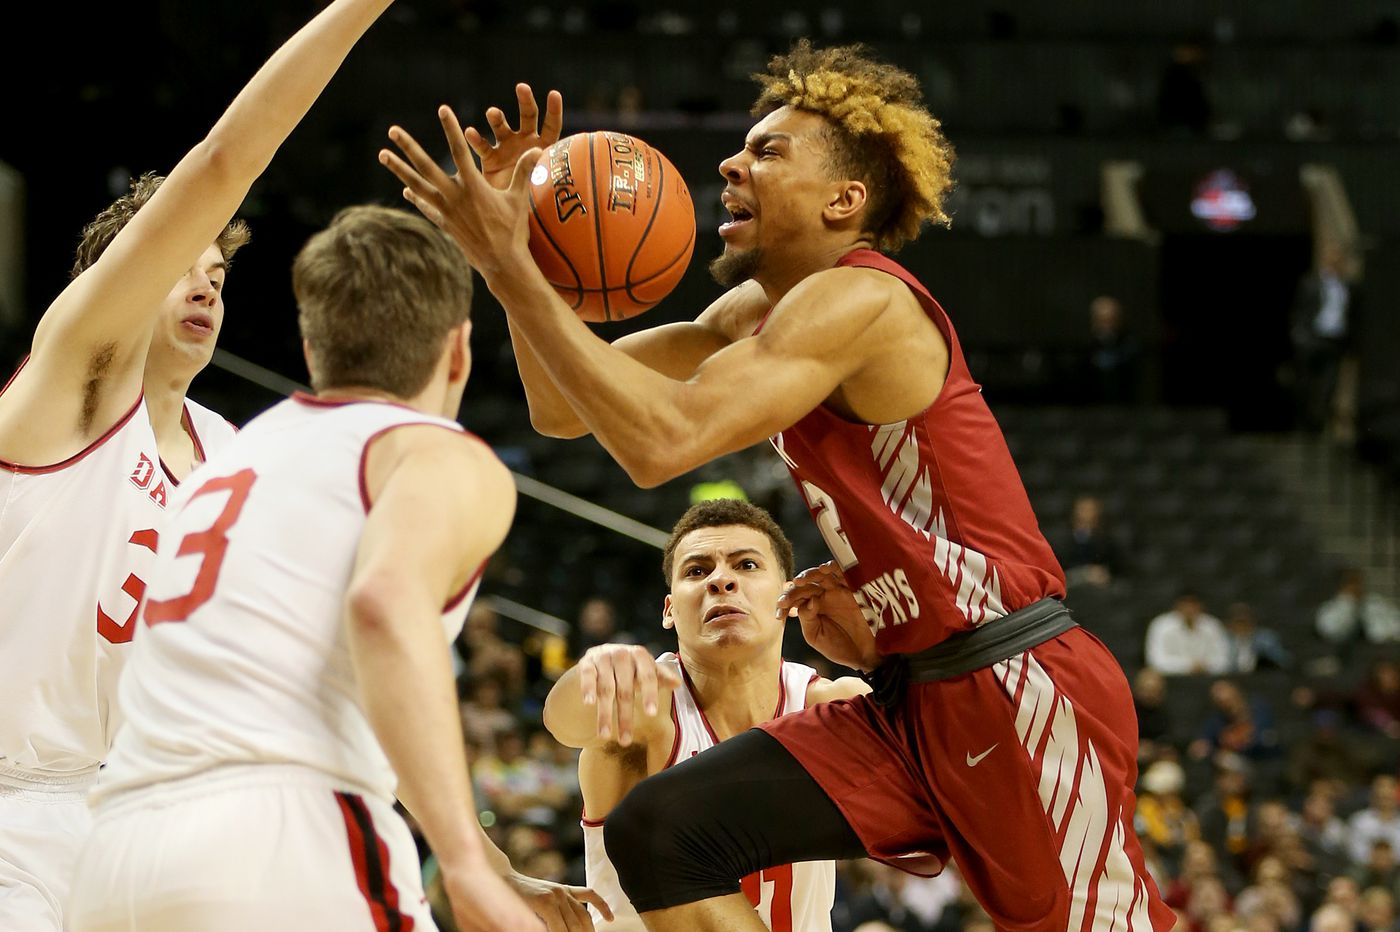 Former St. Joseph's forward Charlie Brown feeling good after Sixers predraft workout